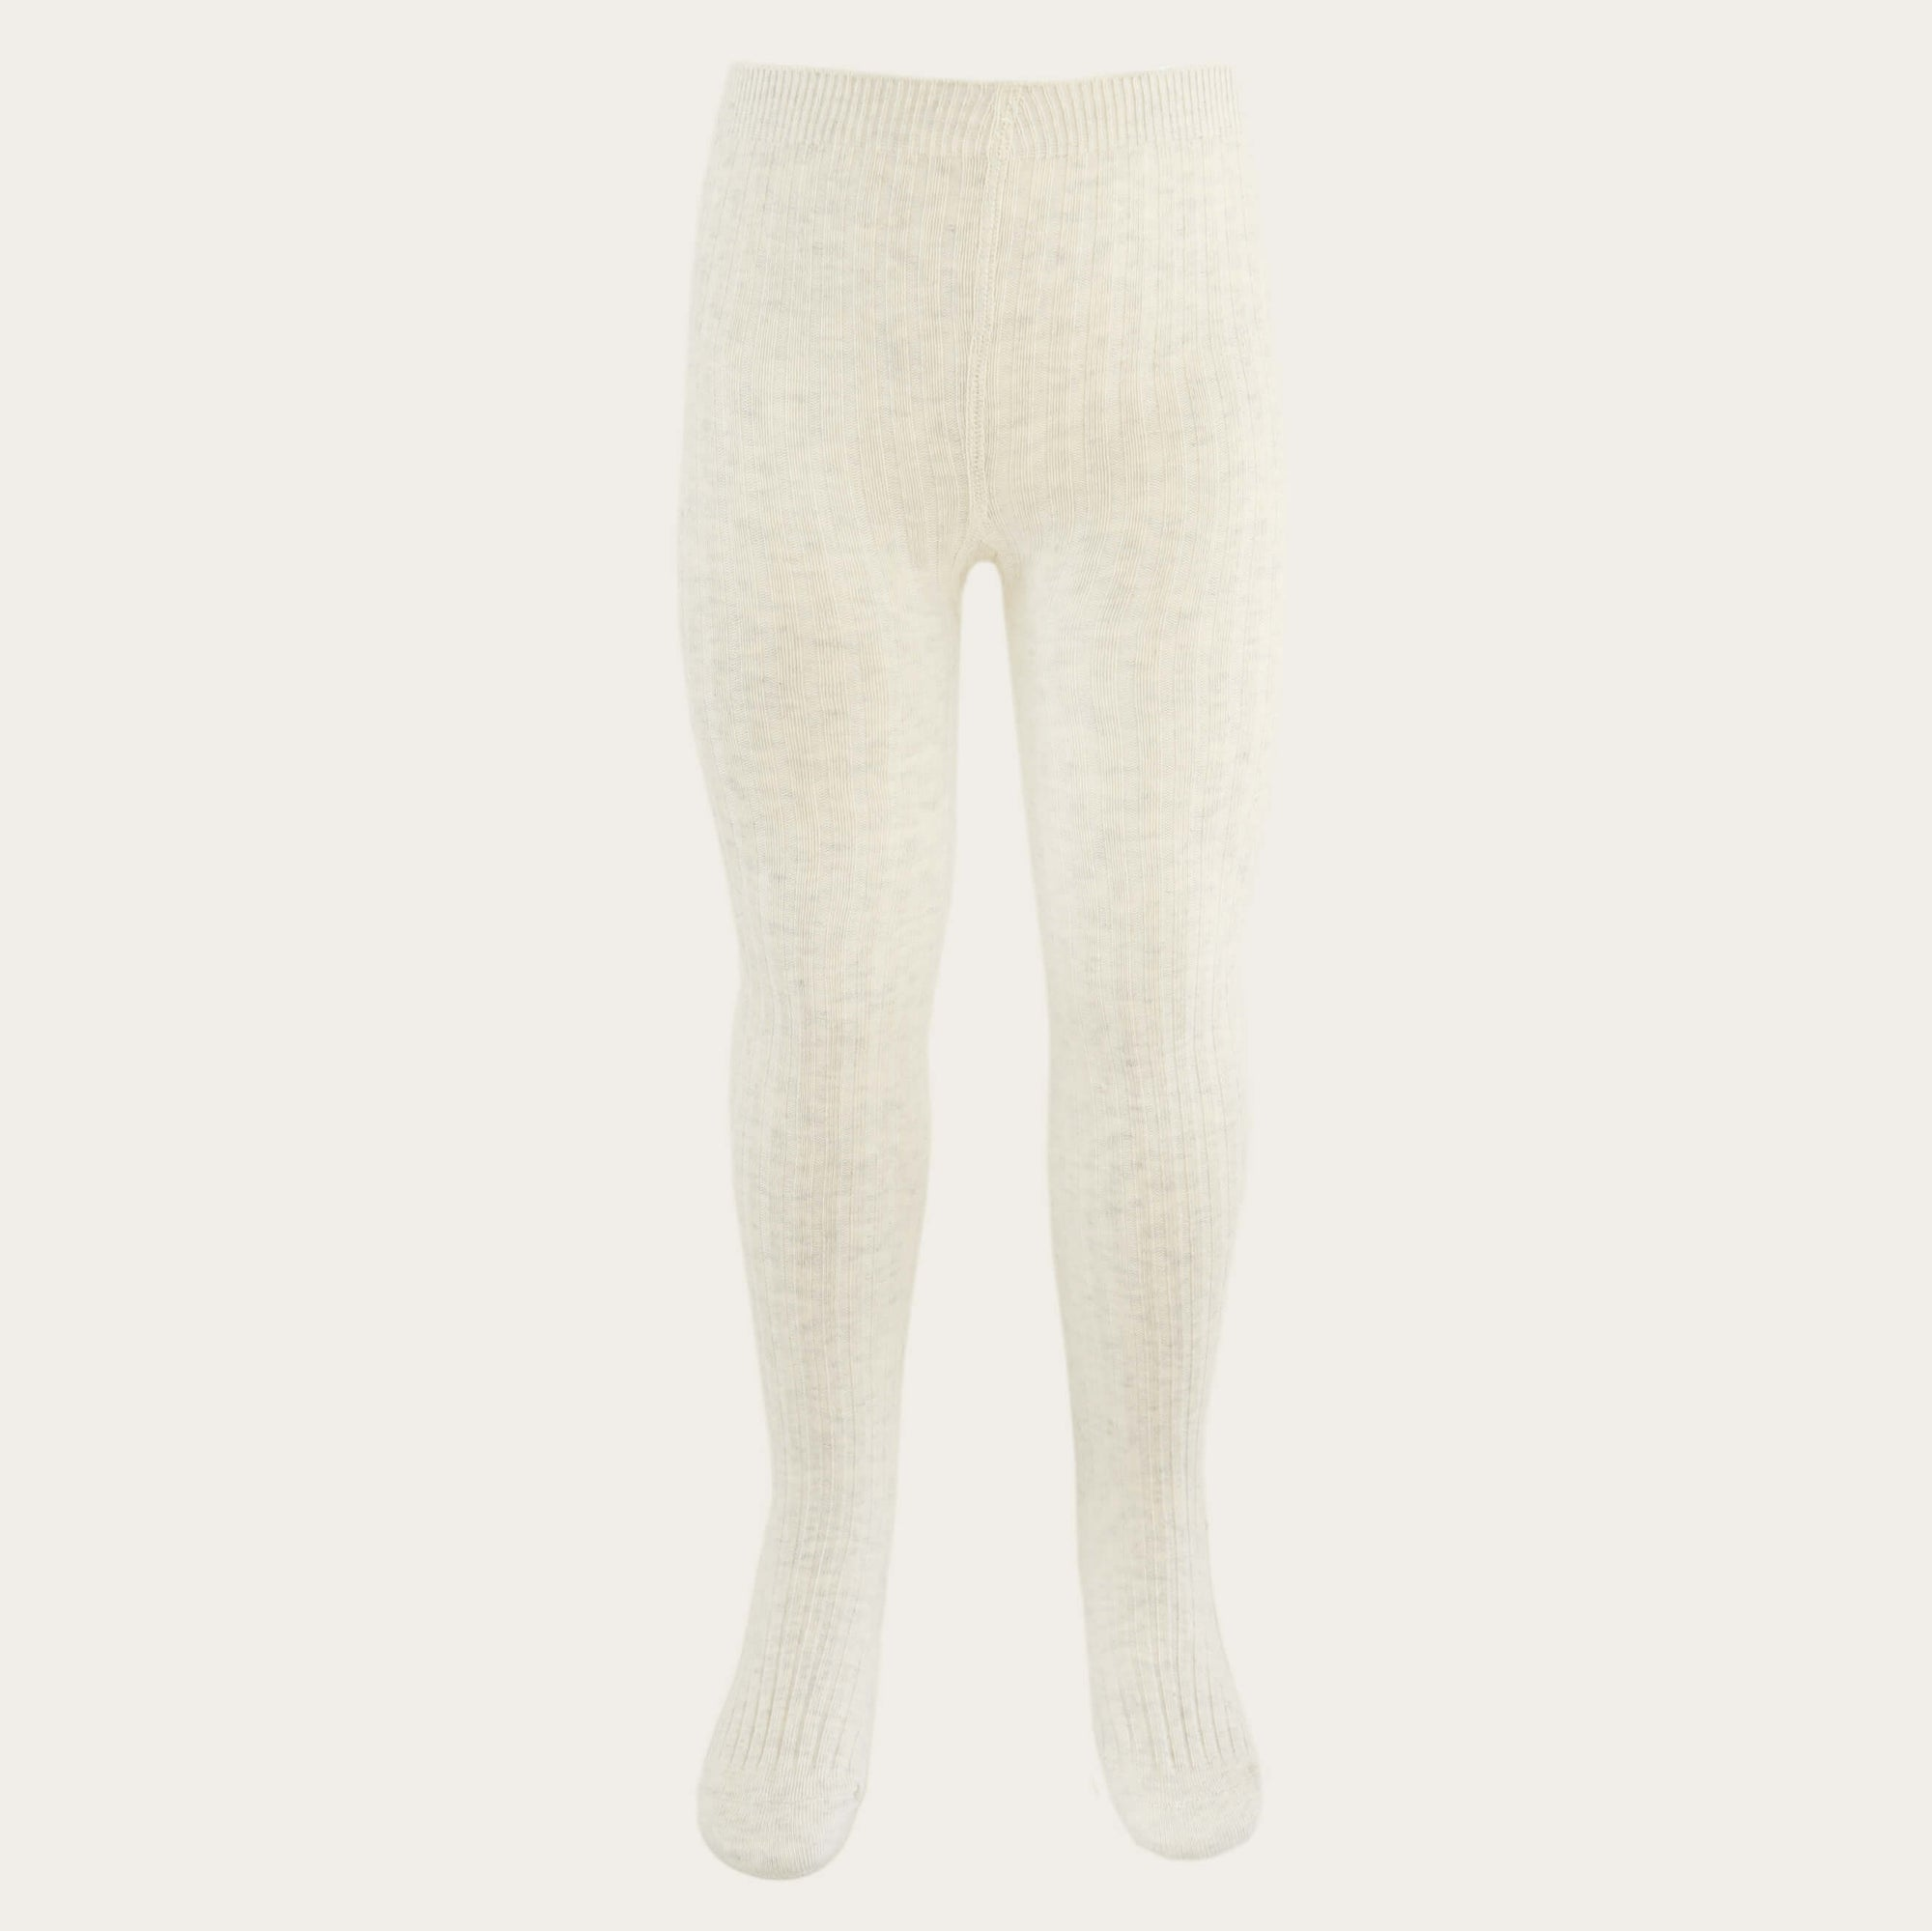 Jamie Kay Ribbed Tights Oatmeal | Tiny People